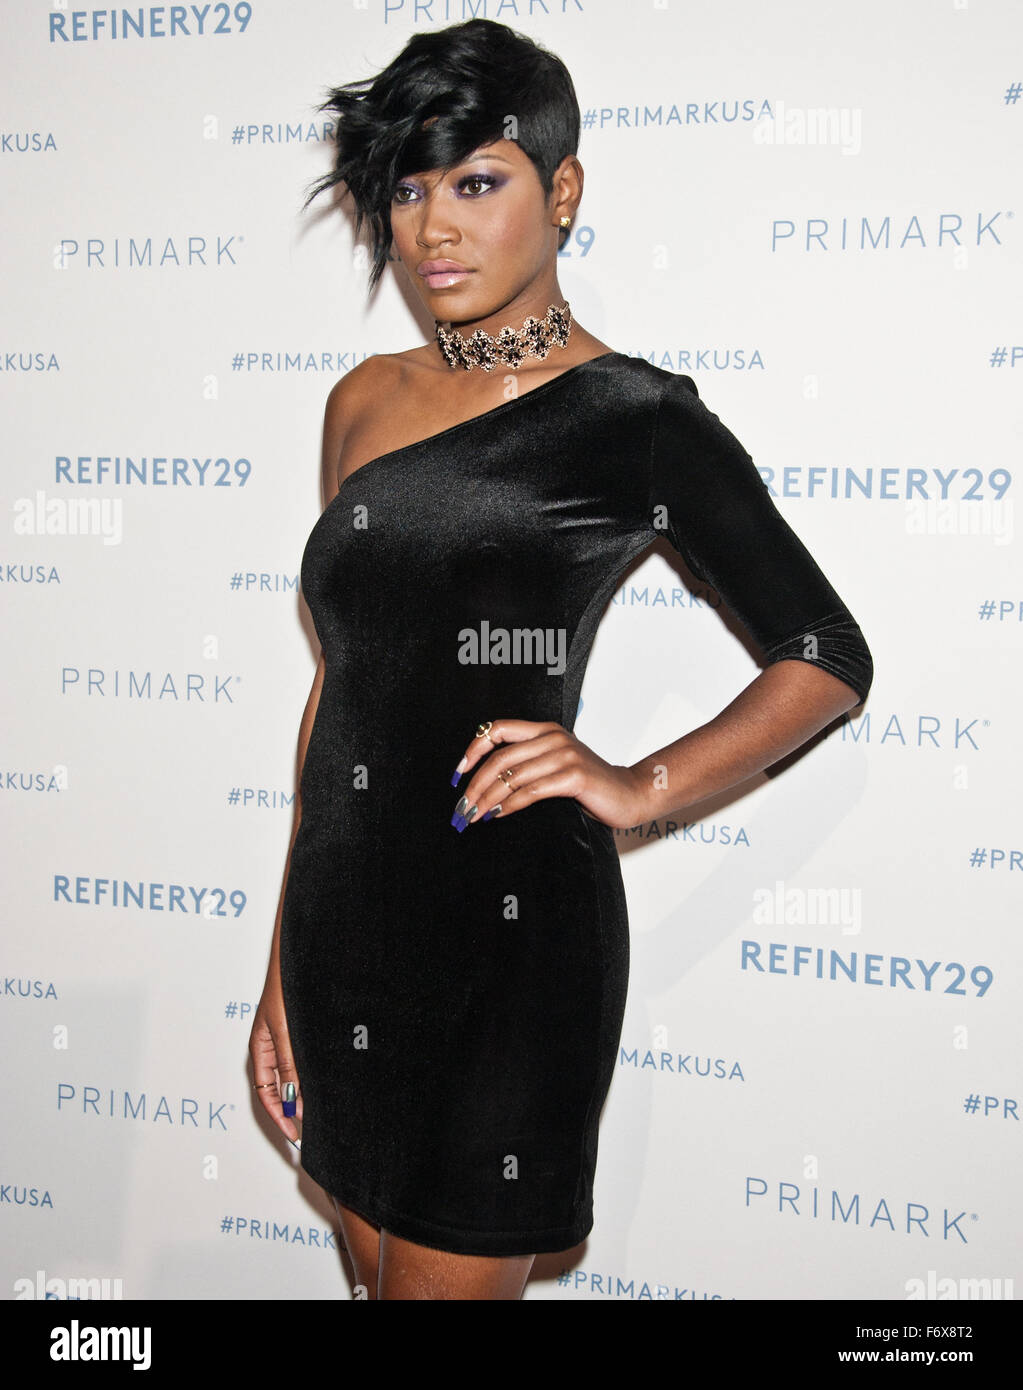 Philadelphia, Pennsylvania, USA. 19th November, 2015. Keke Palmer Poses at Primark's King of Prussia Store Opening Stock Photo